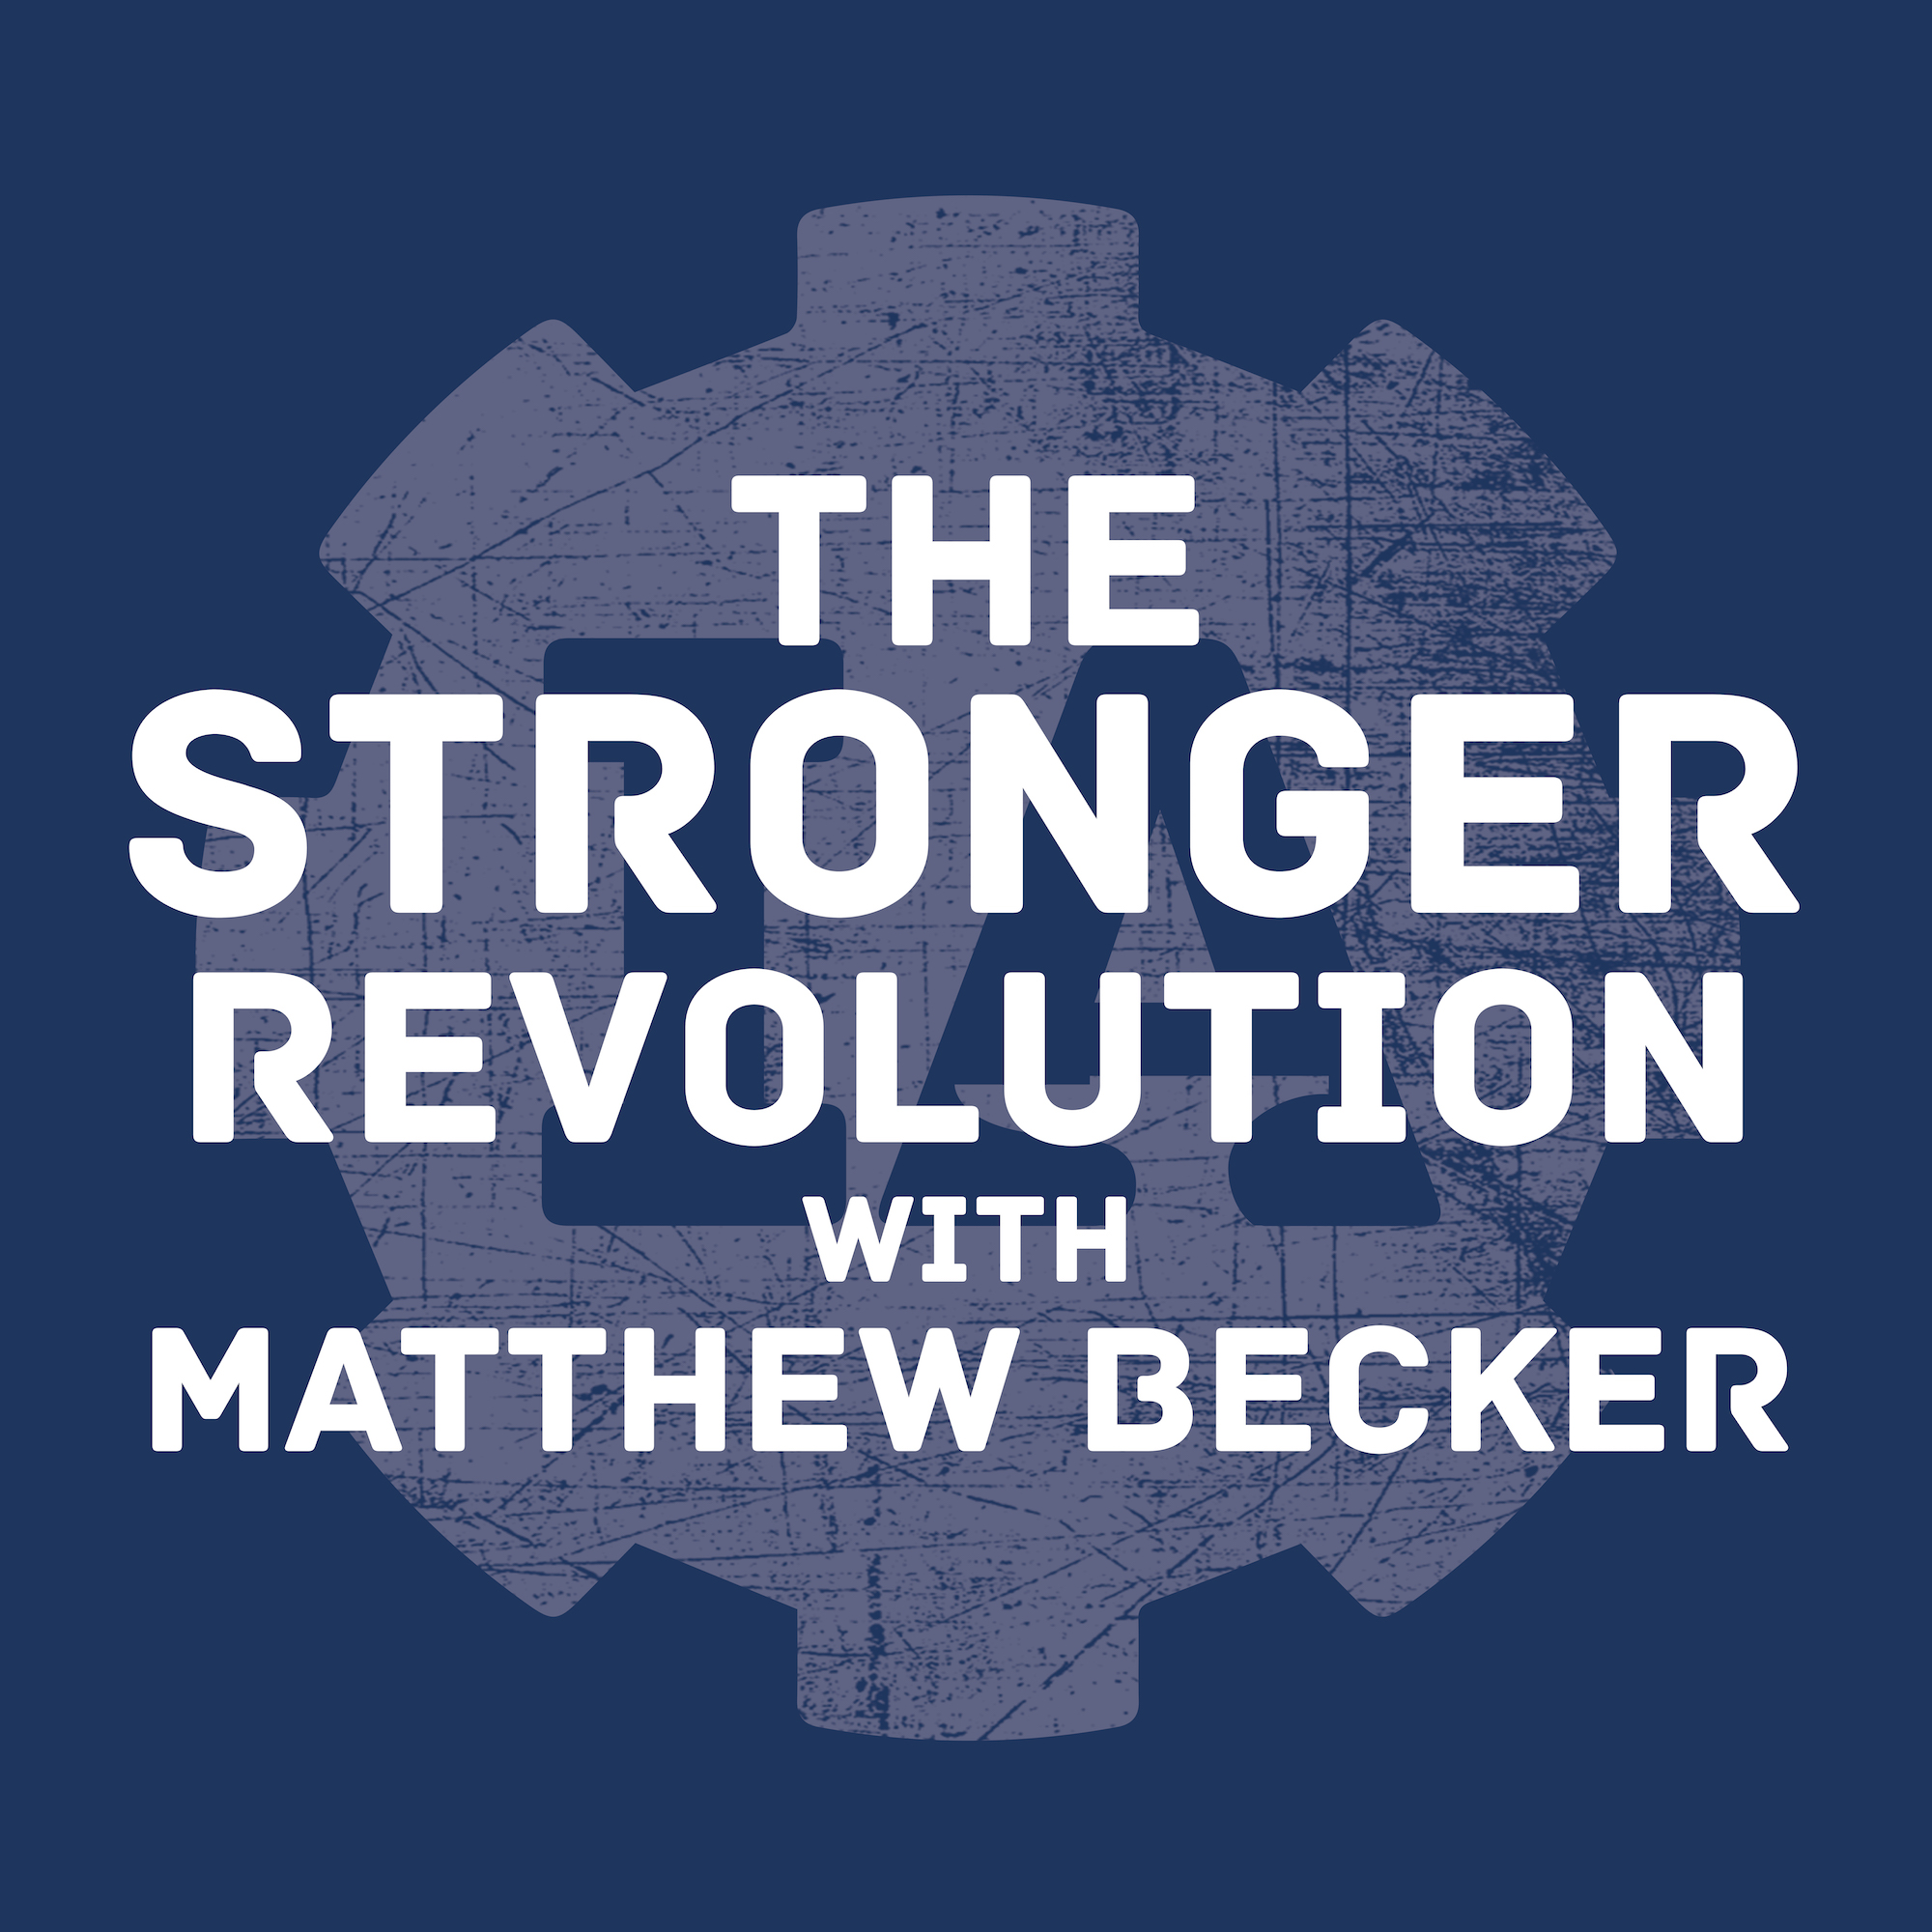 The Stronger Revolution